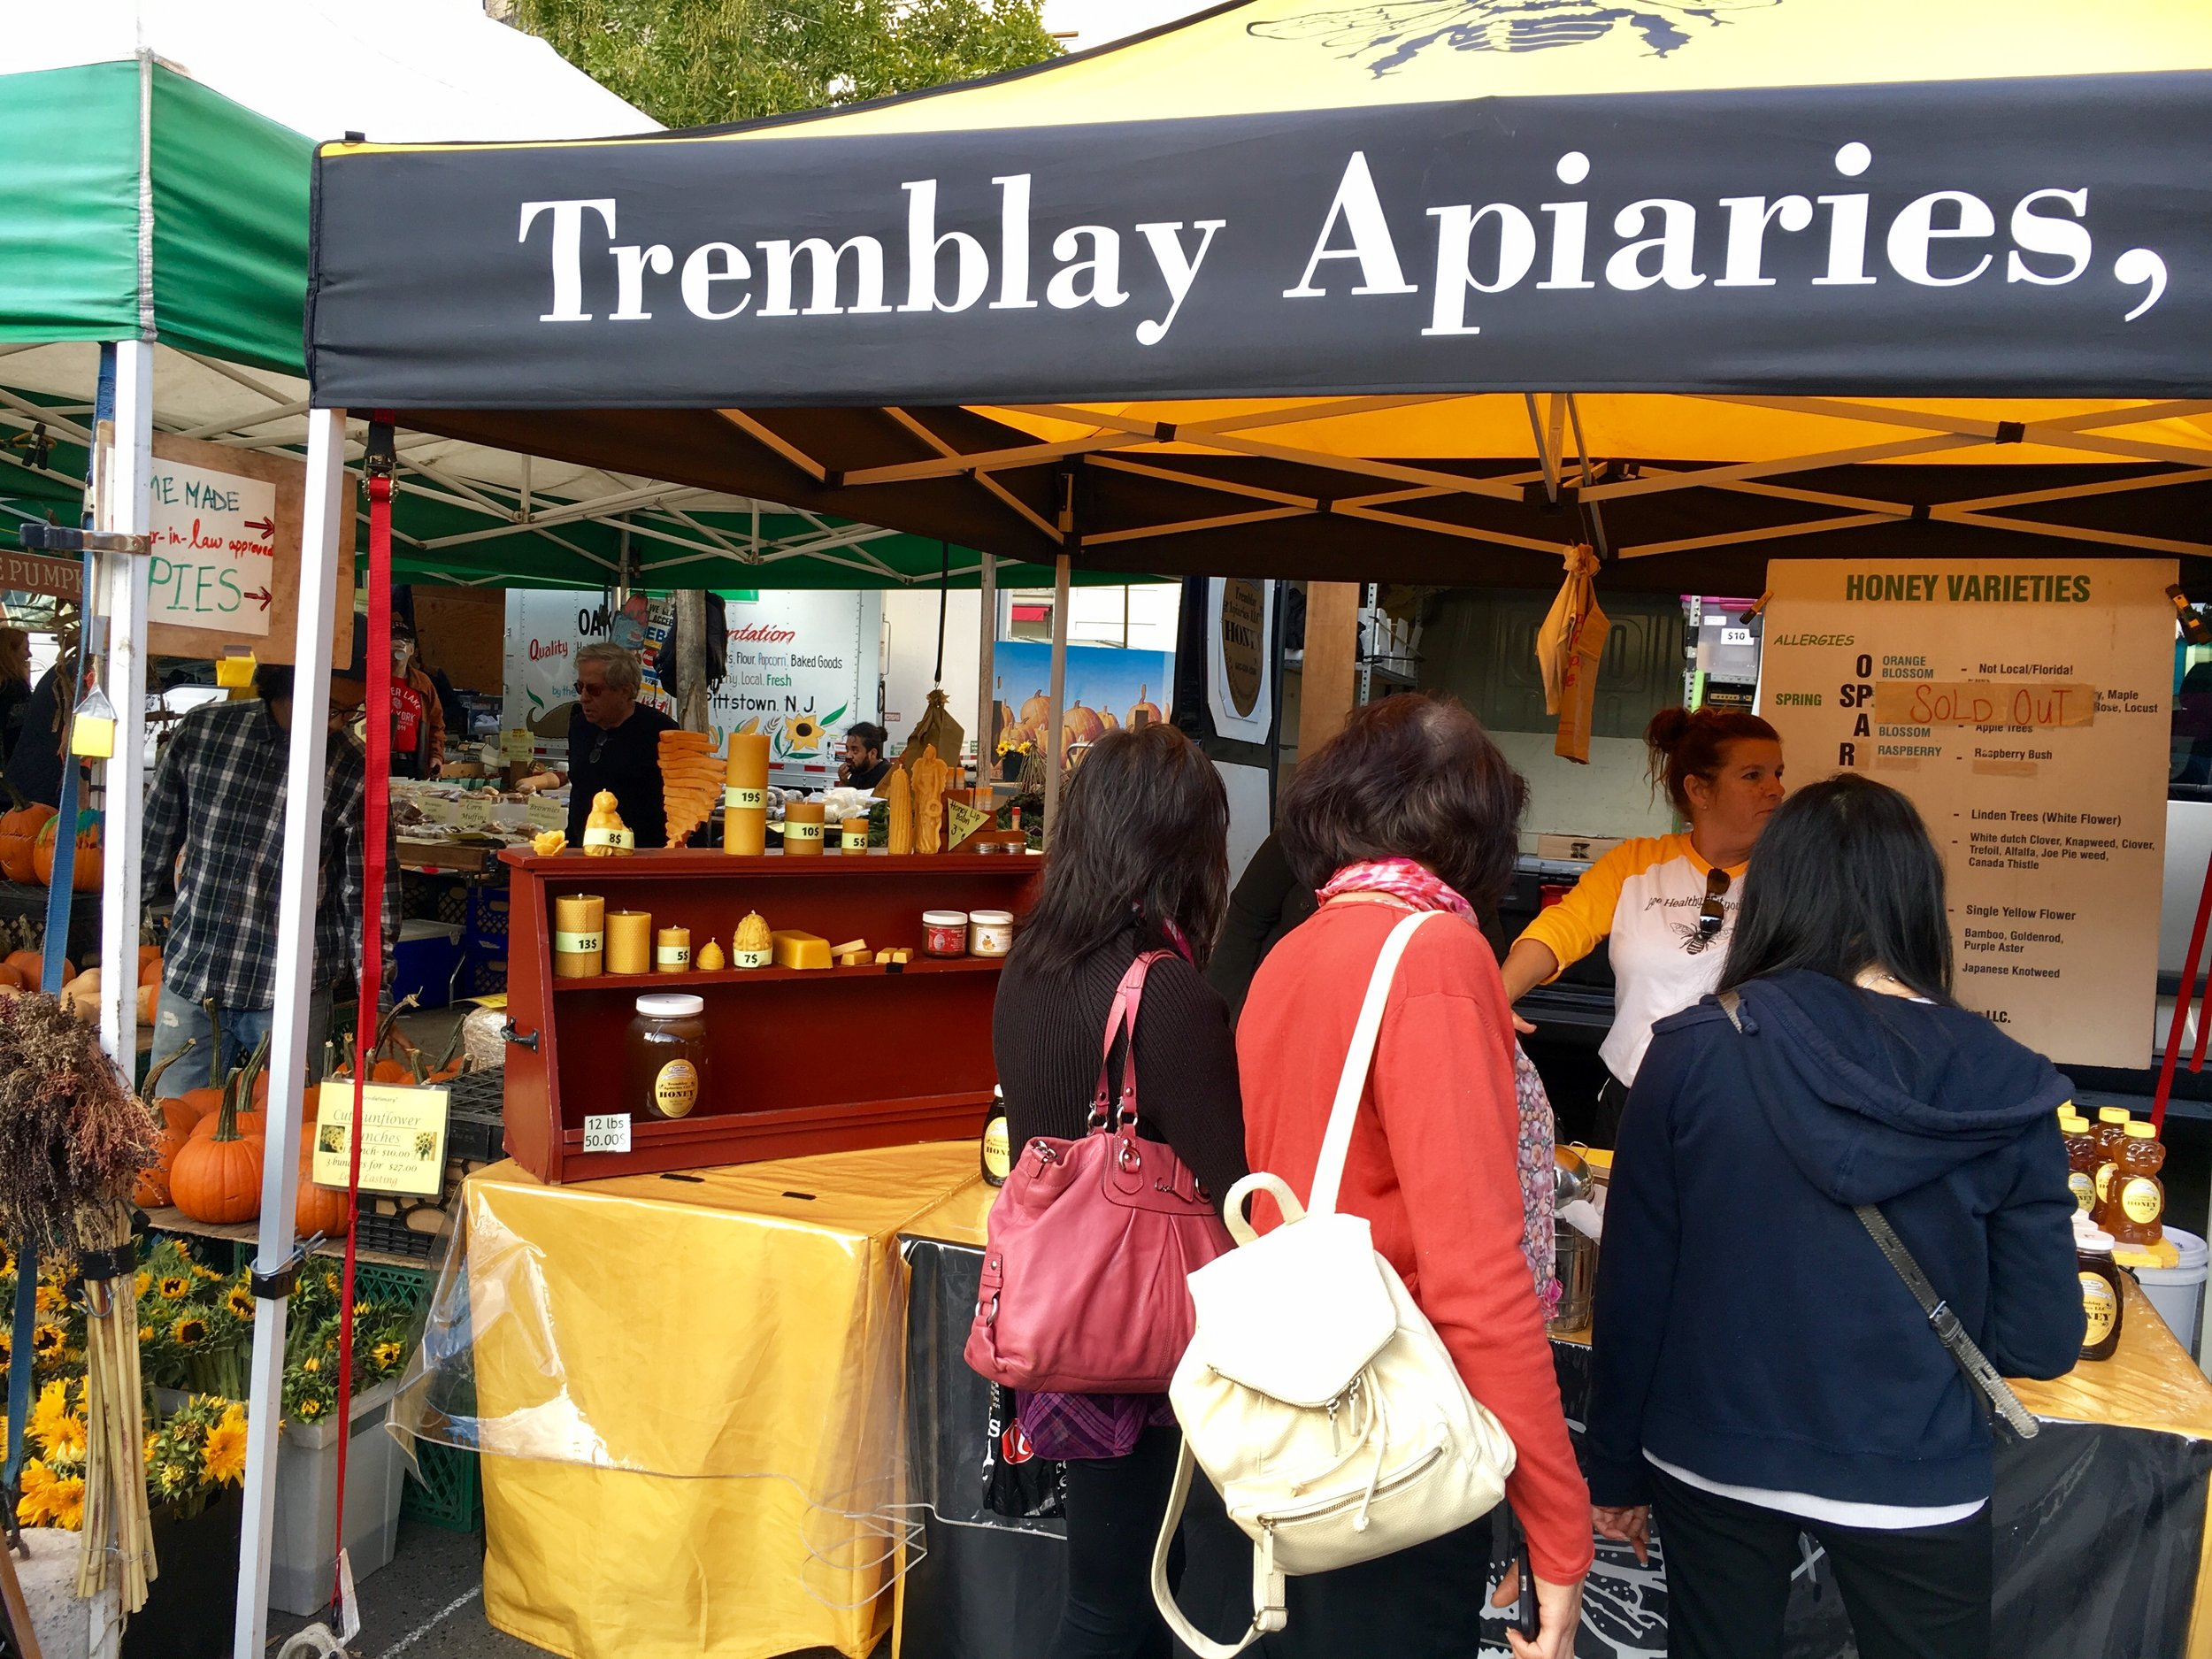 Tremblay Apiaries.jpg